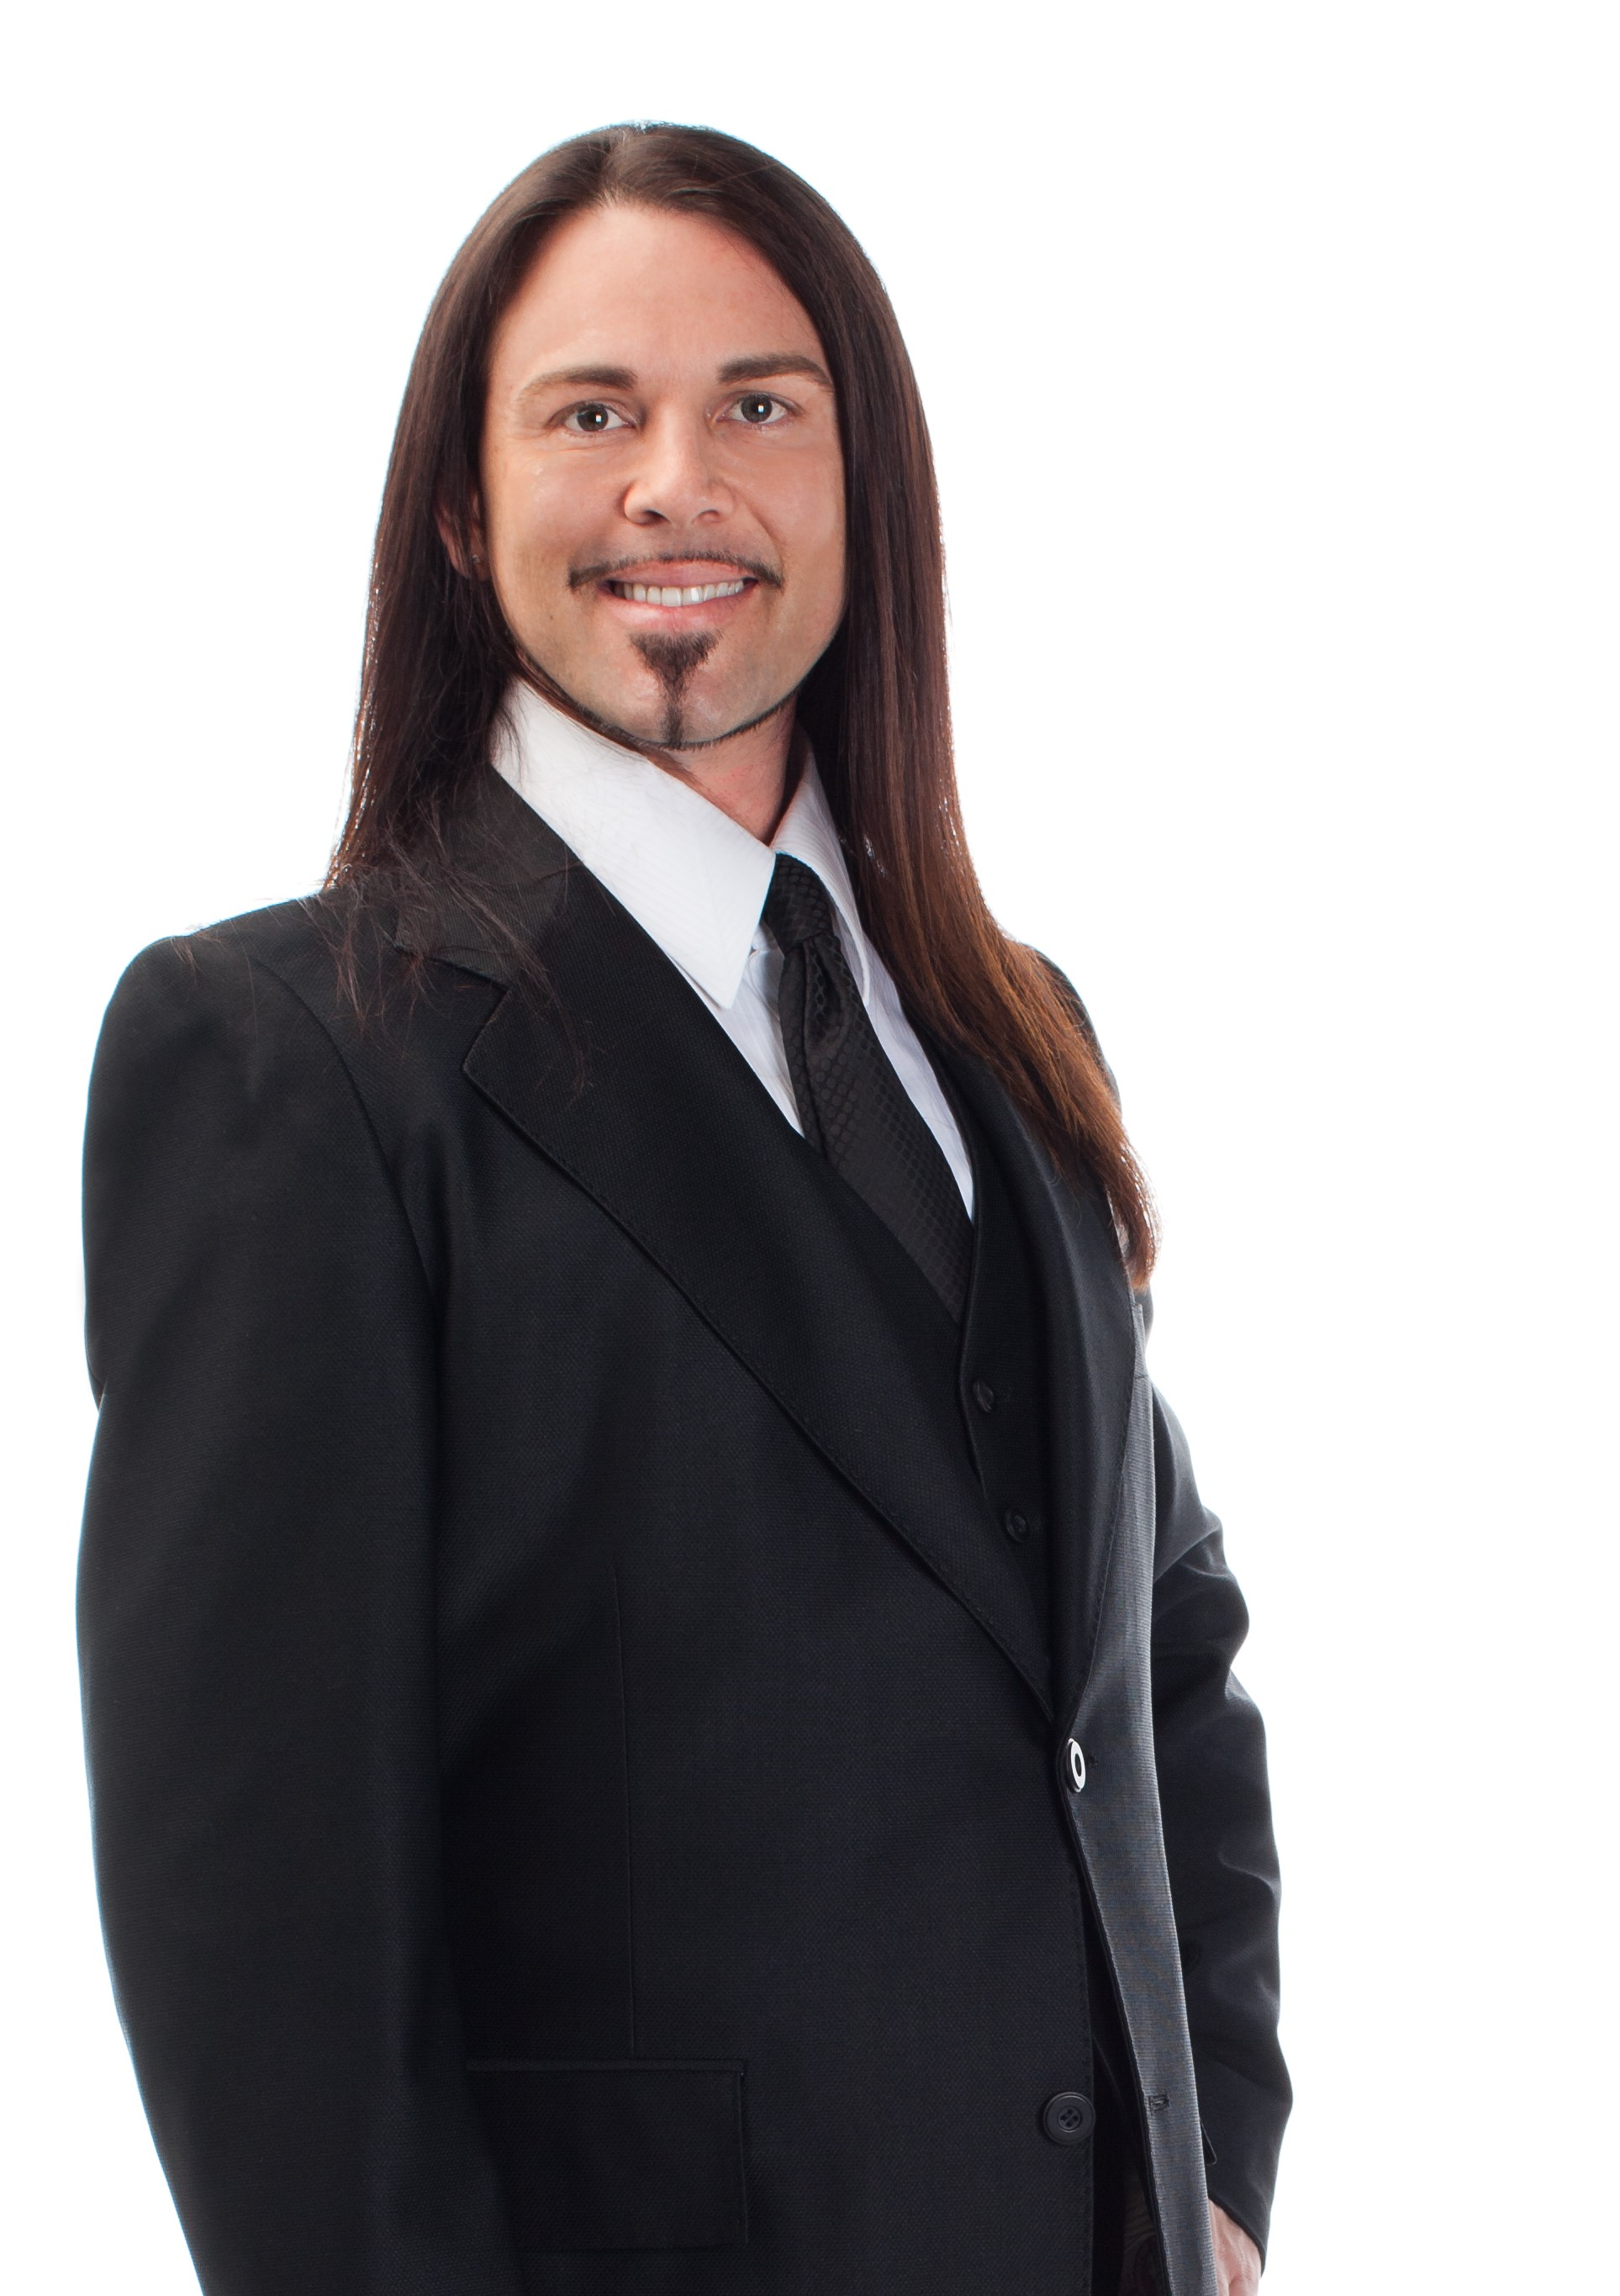 Brent Hardgrave, International artisan, Keune Haircosmetics, Educational and artistry ambassador, Aqua Hair Extensions | Owner, My Beauty Butler